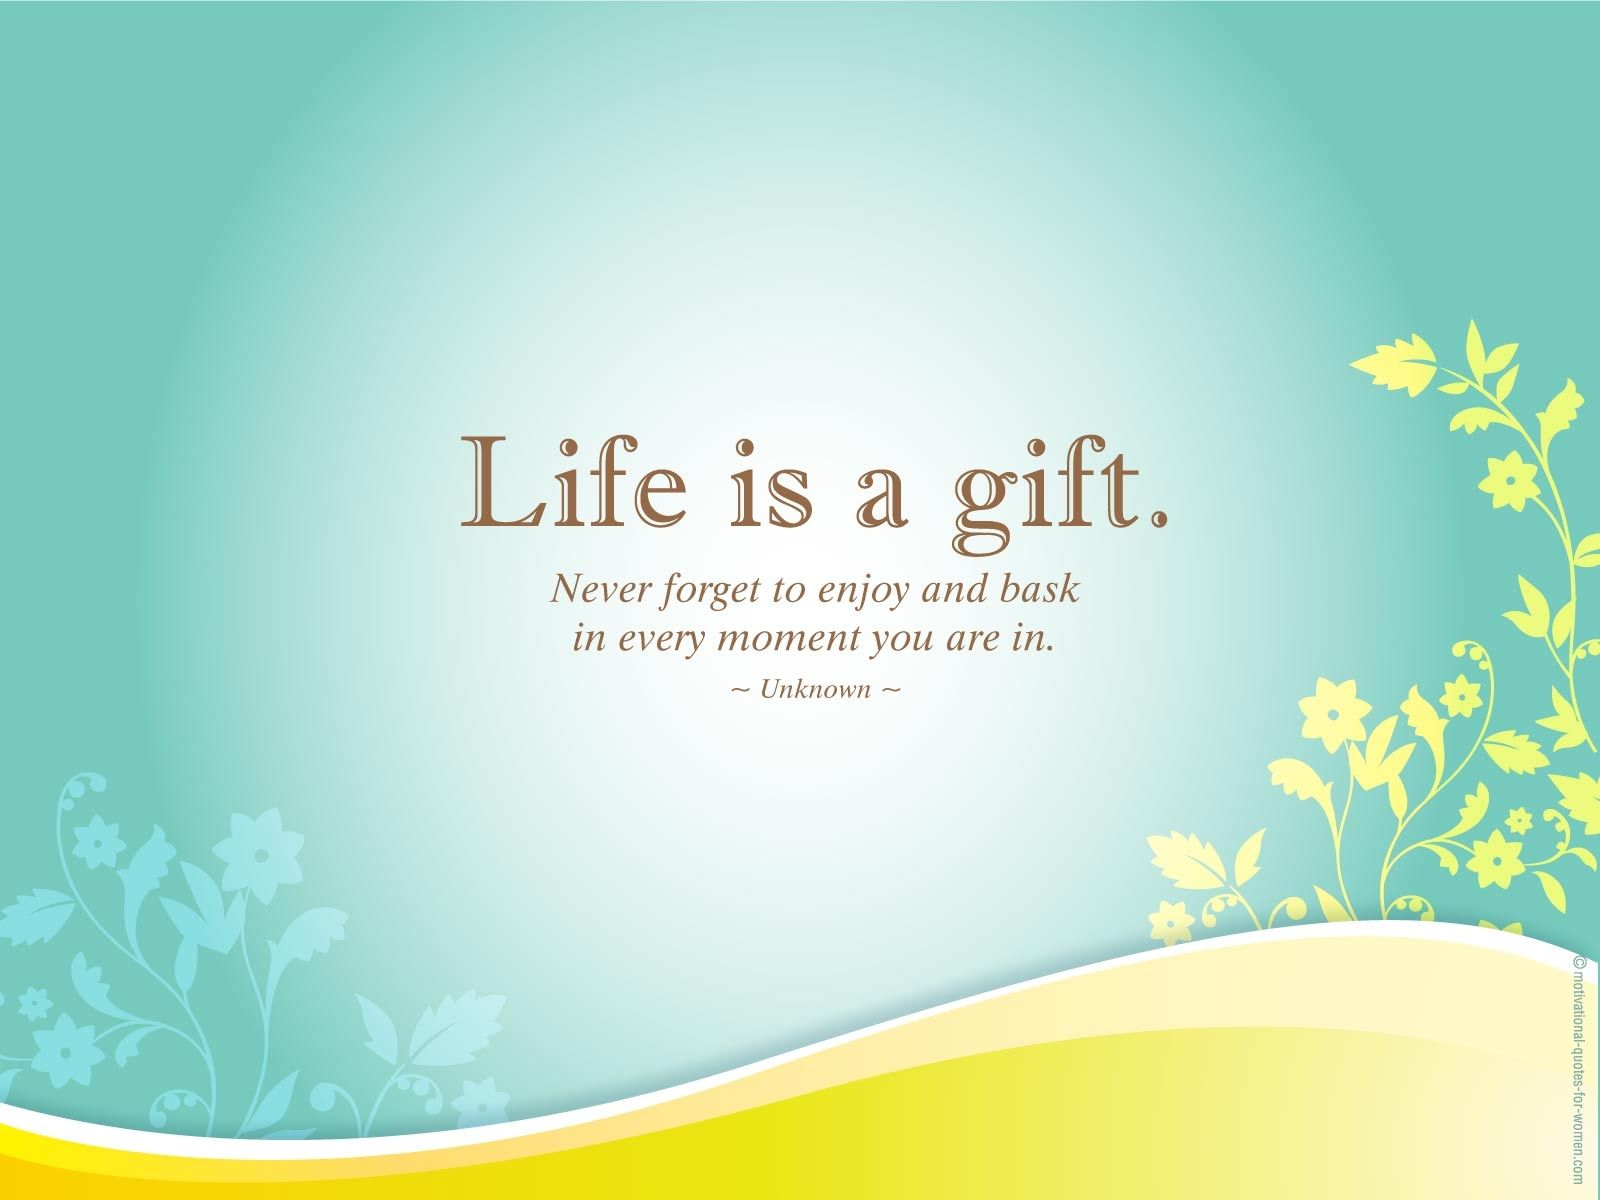 Life is a gift life quotes quotes positive quotes quote life